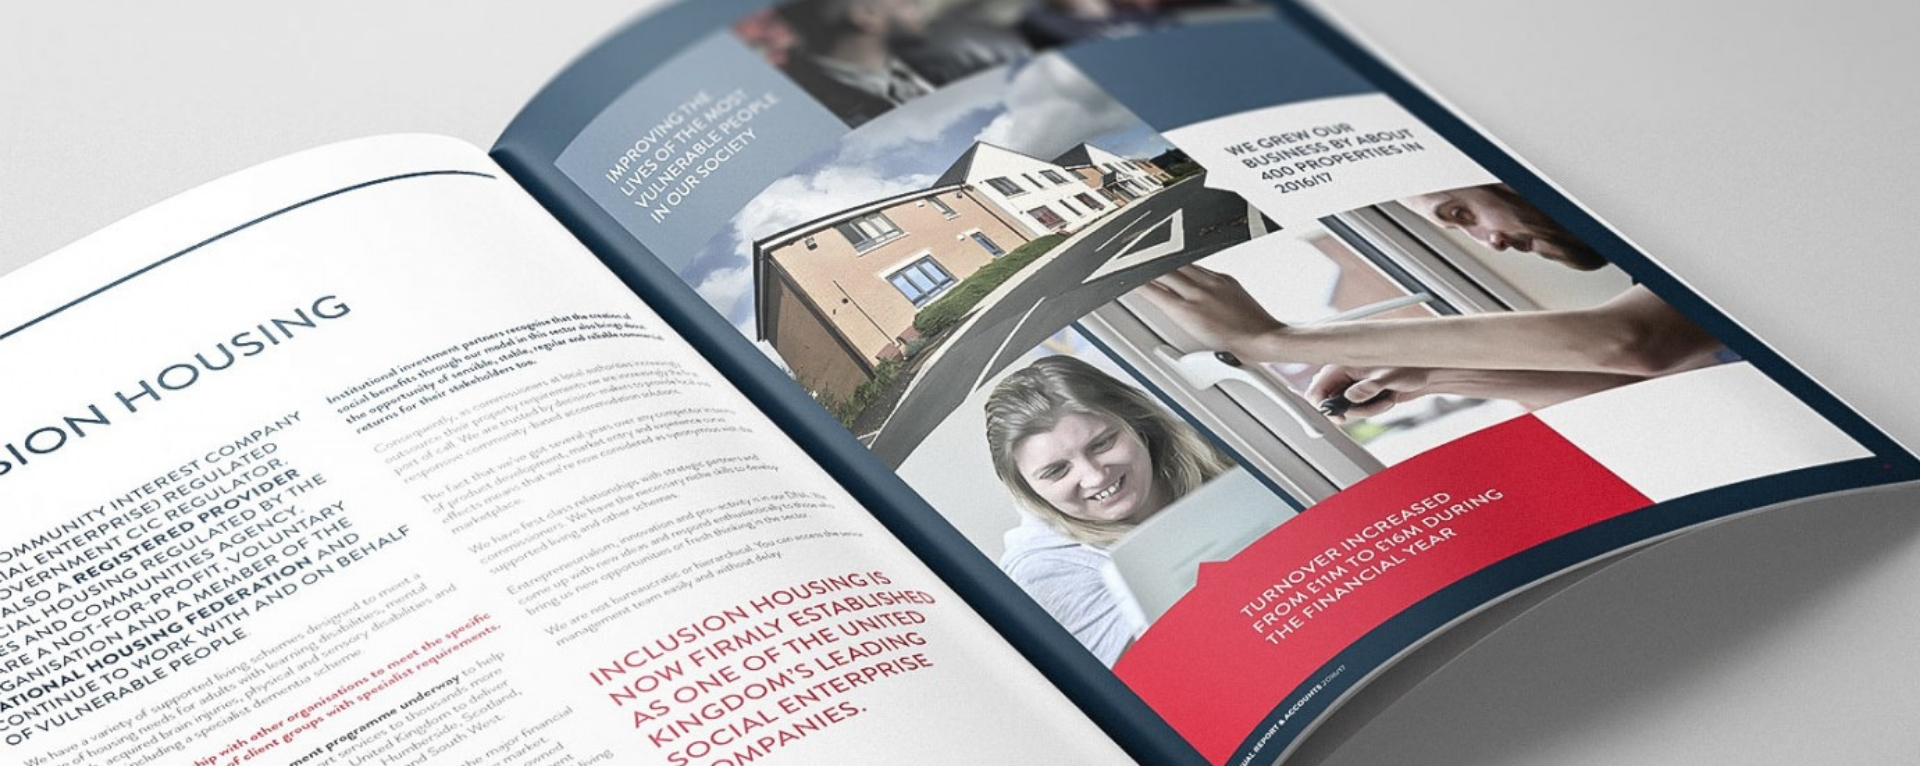 Annual Report Design for Inclusion Housing